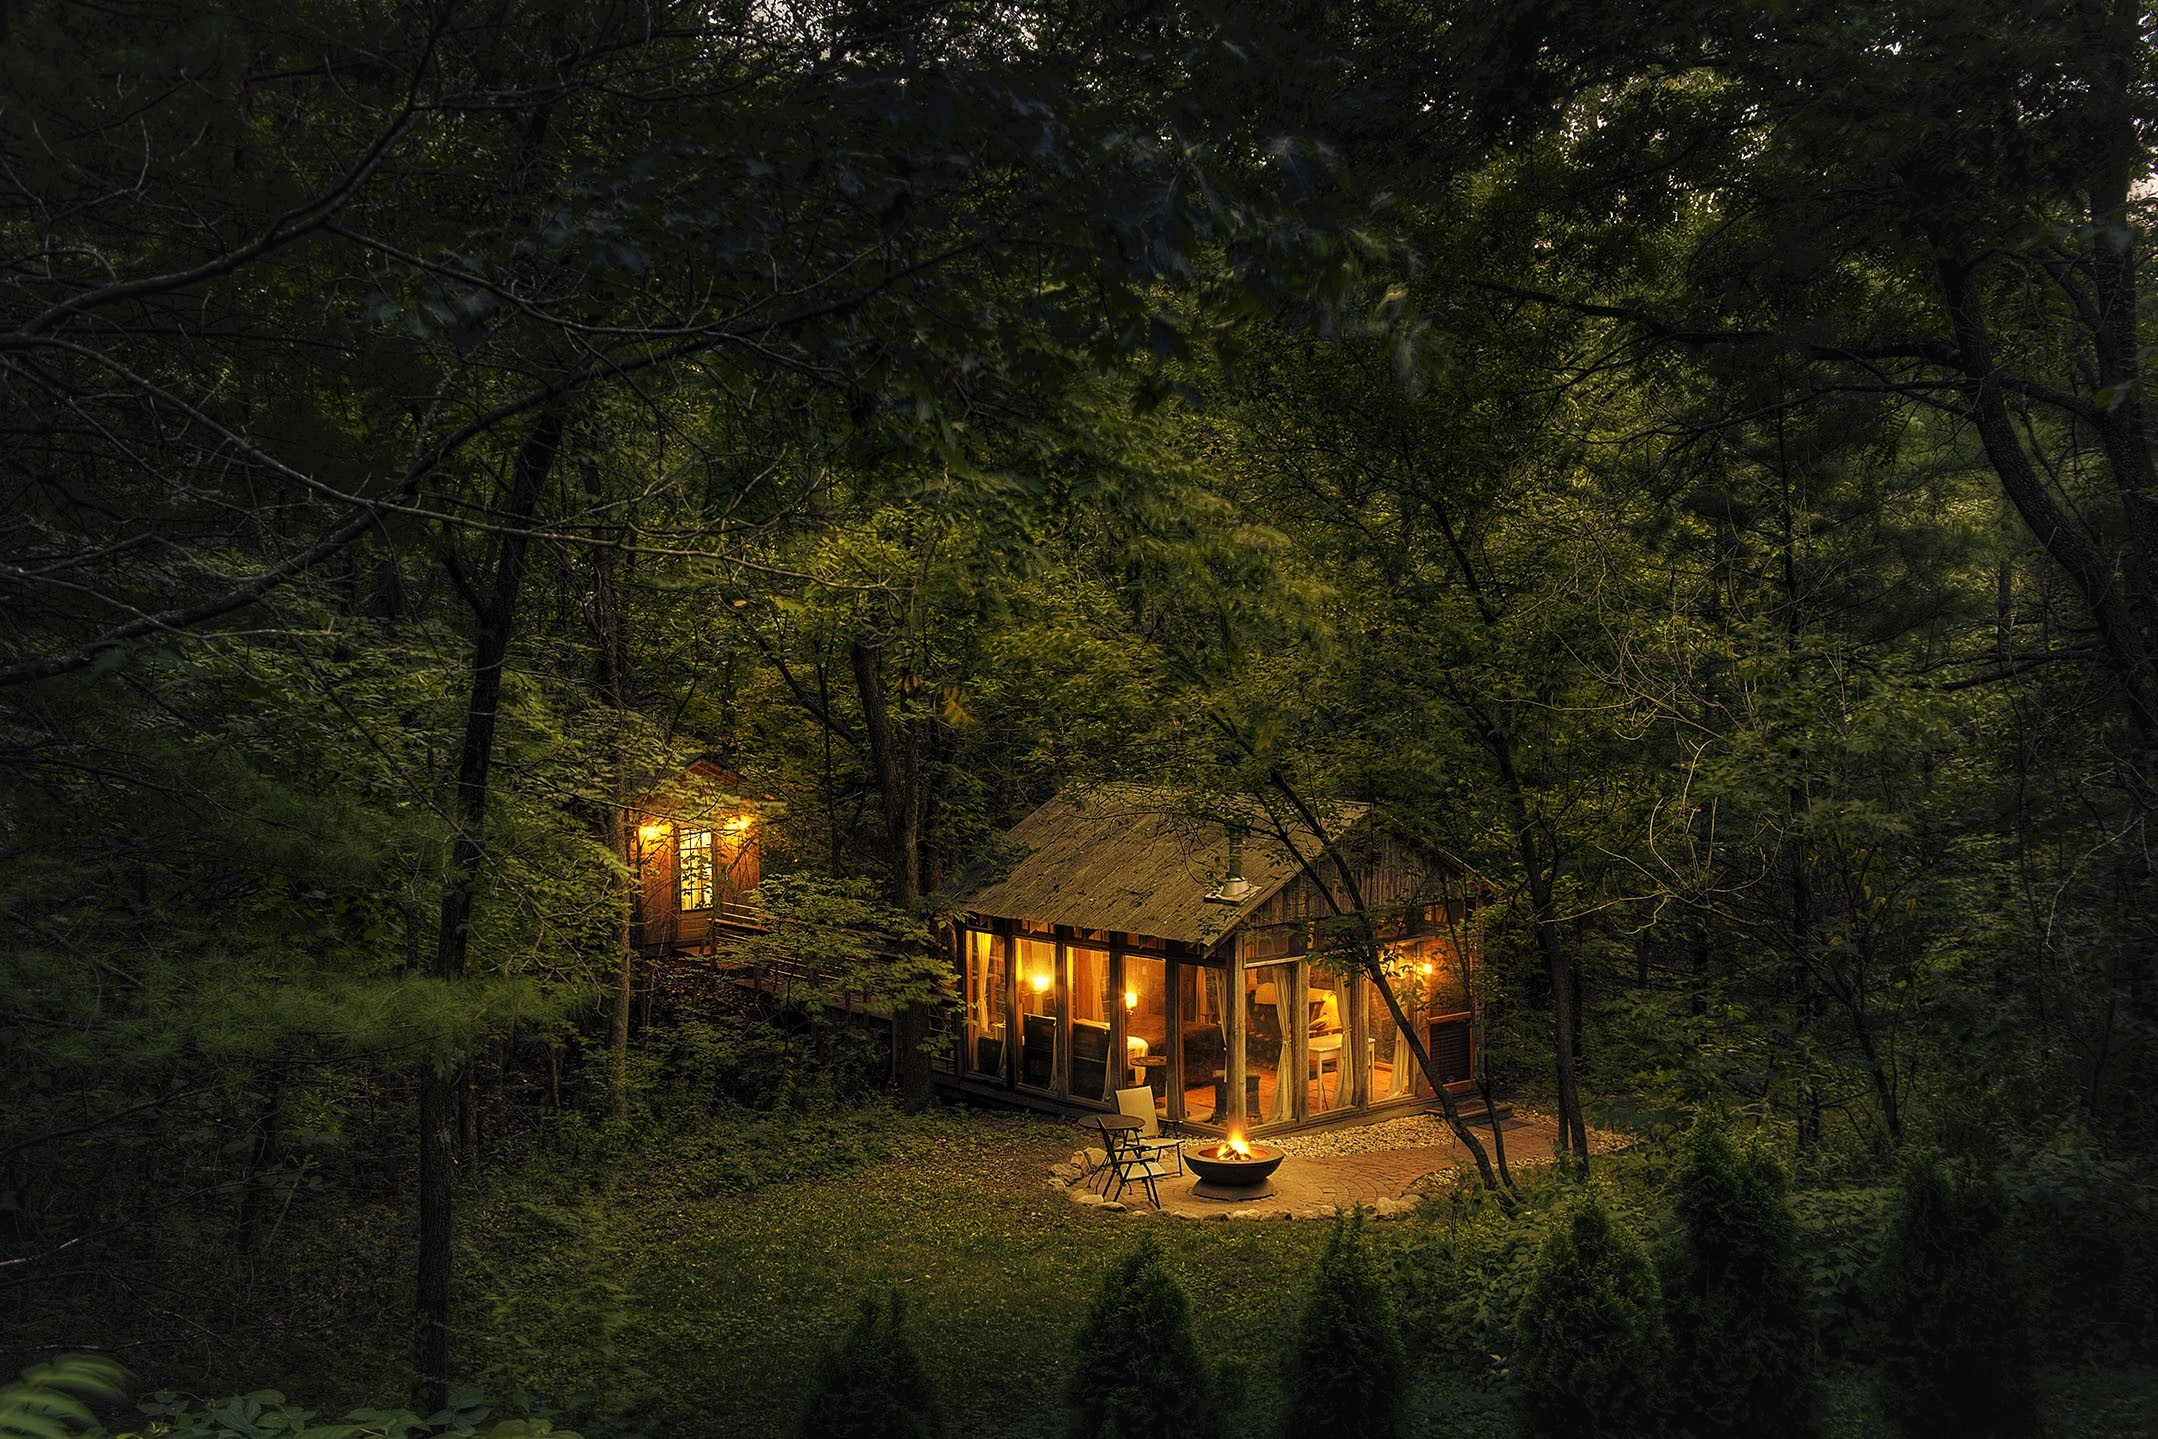 Cabin Forest Green Light Night Wood 2158x1439